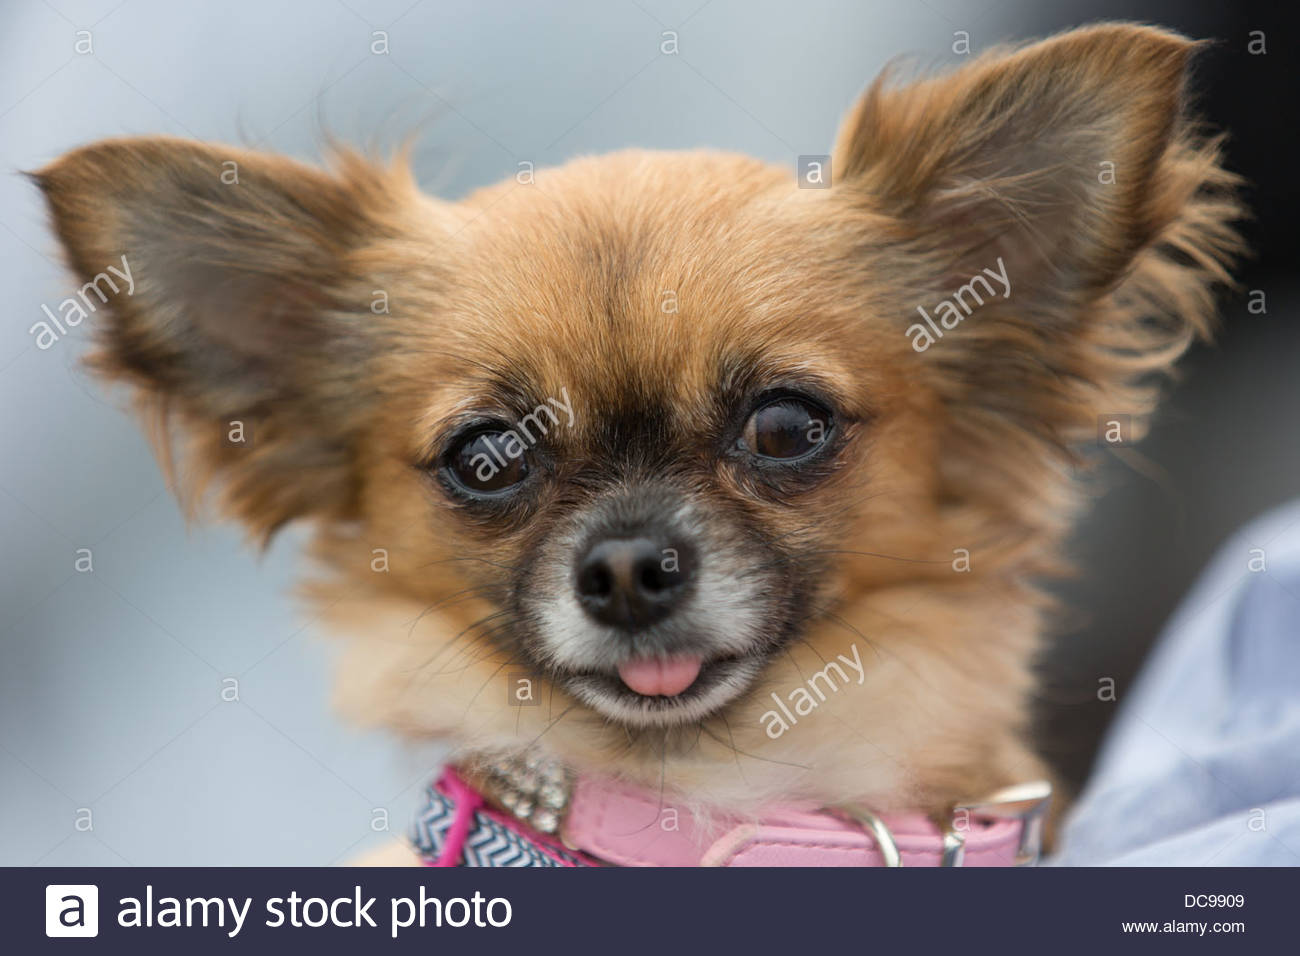 Cute dog with pink collar - Stock Image